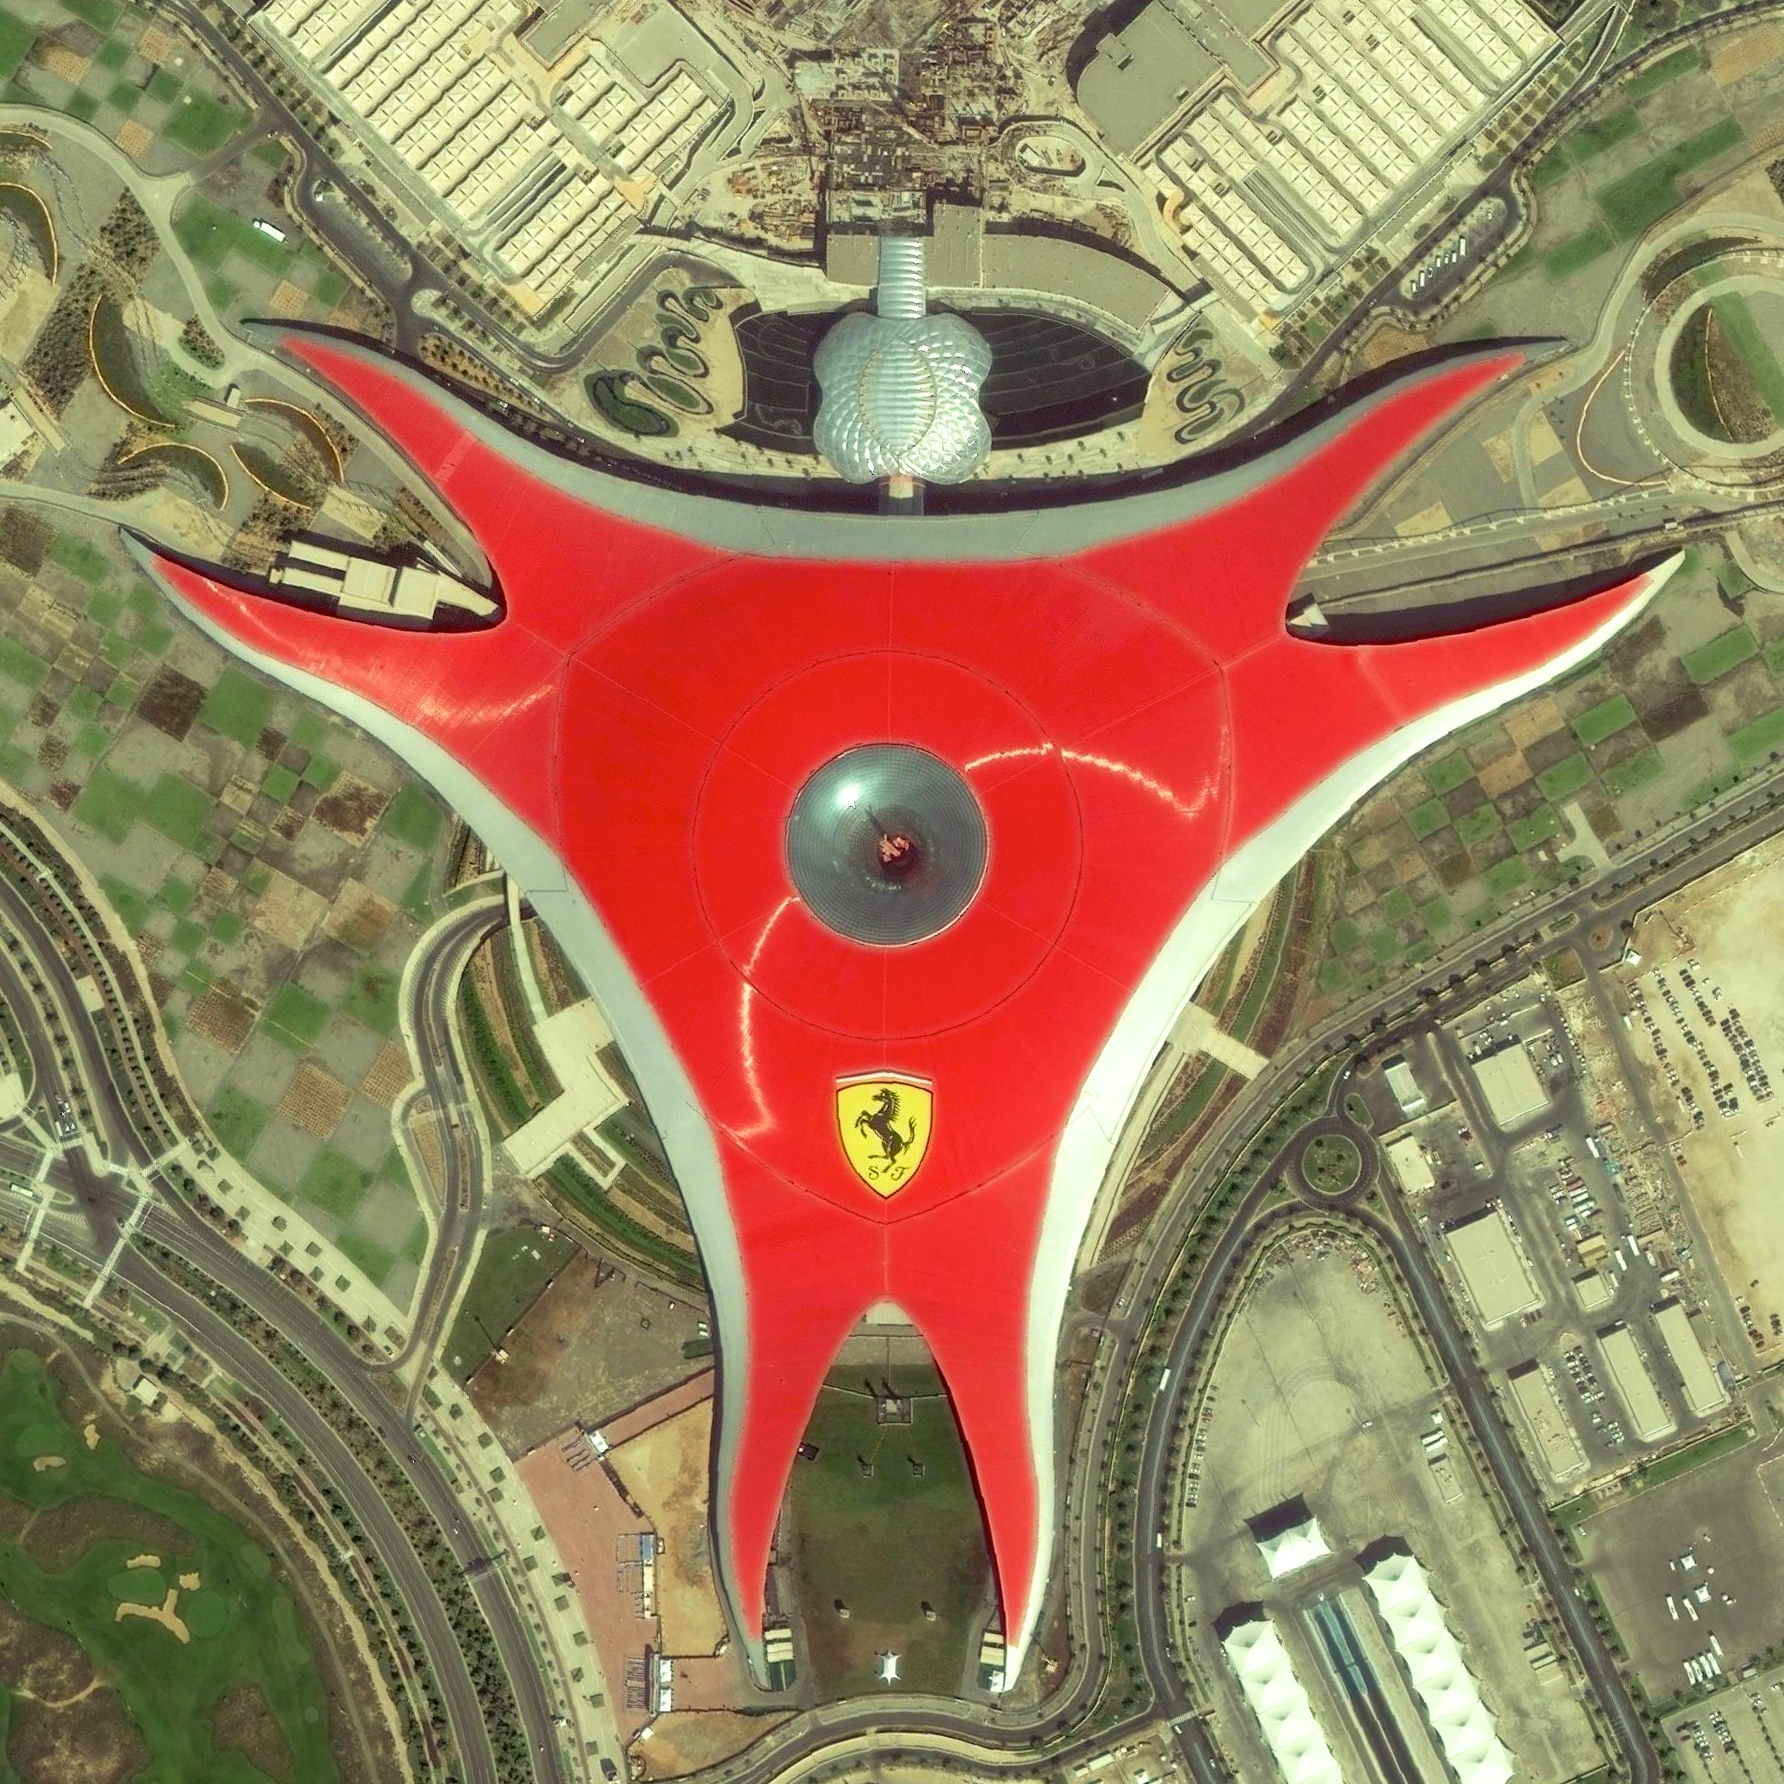 """6/1/2015   Ferrari World   Abu Dhabi, United Arab Emirates  24.483238900°, 54.607439100°    Ferrari World is an amusement park located on Yas Island in Abu Dhabi, United Arab Emirates. Covering 86,000 square meters, it claims to be the world's largest indoor theme park and contains """"Formula Rossa"""" - the world's fastest roller coaster."""